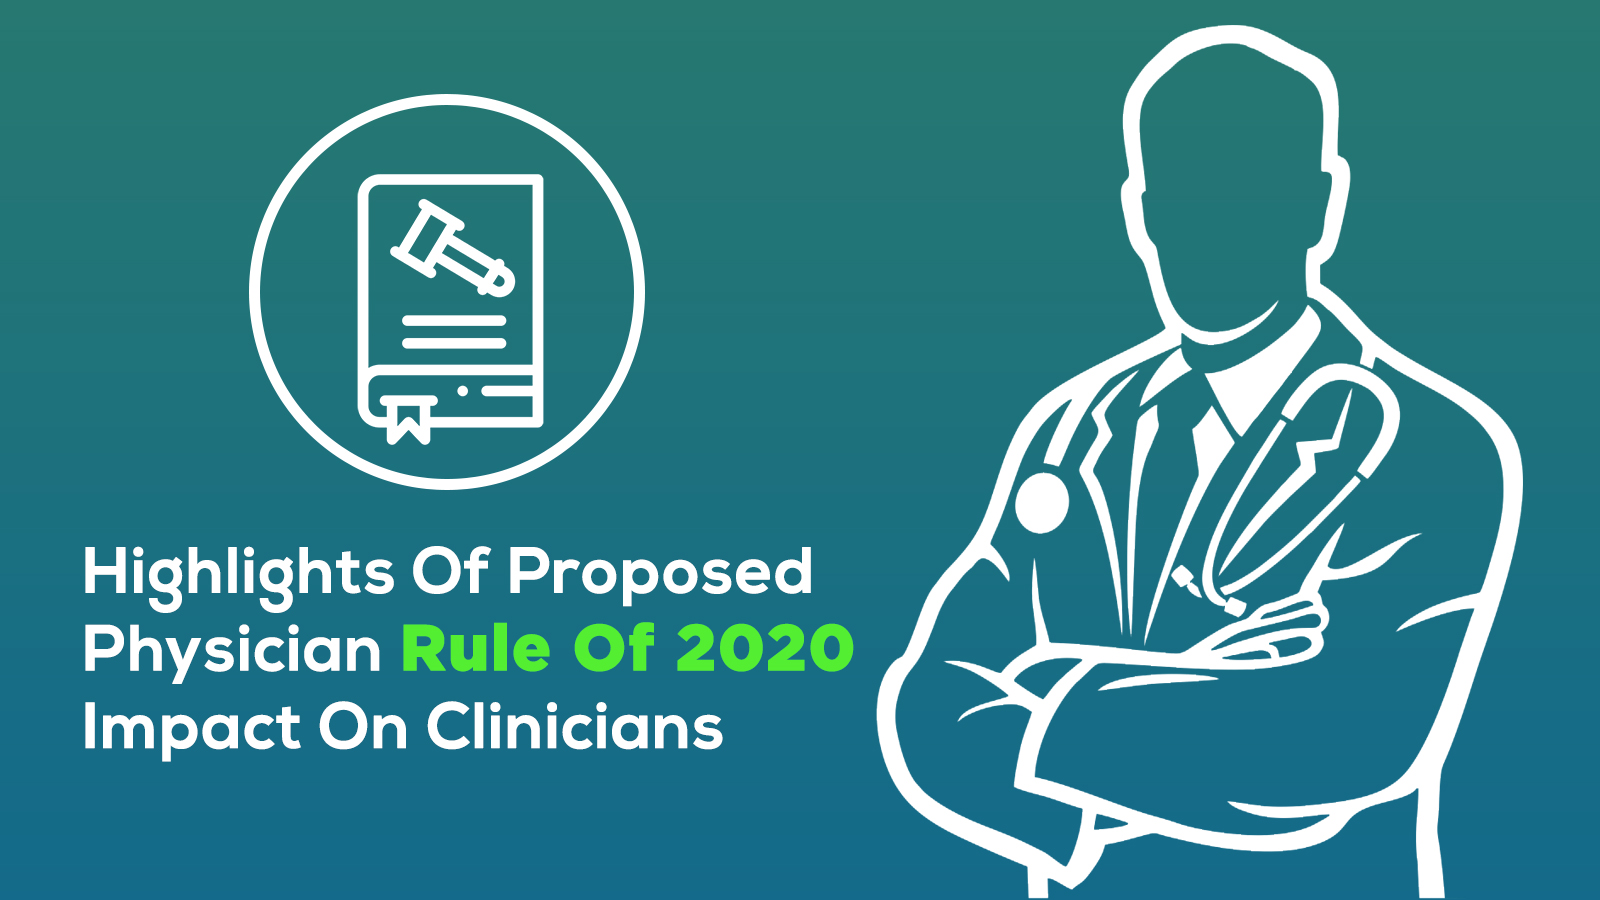 iPatientCare Blog - Highlights Of Proposed Physician Rule Of 2020 Impact On Clinicians